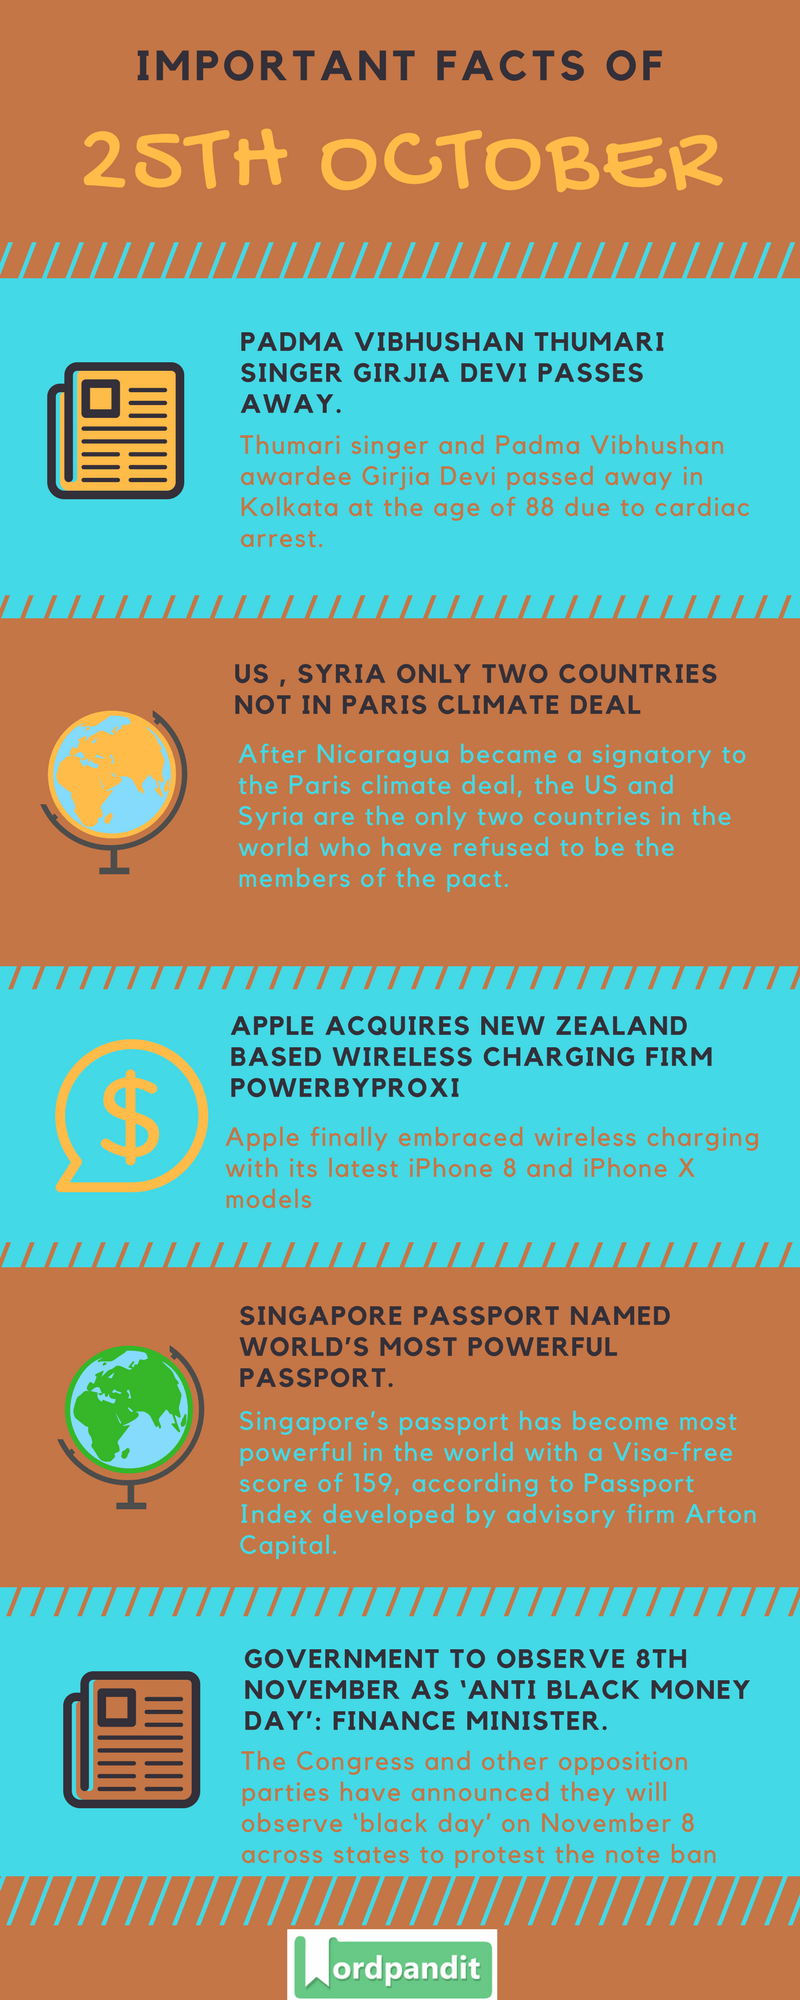 Daily-Current-Affairs-25-october-2017-Current-Affairs-Quiz-october-25-2017-Current-Affairs-Infographic